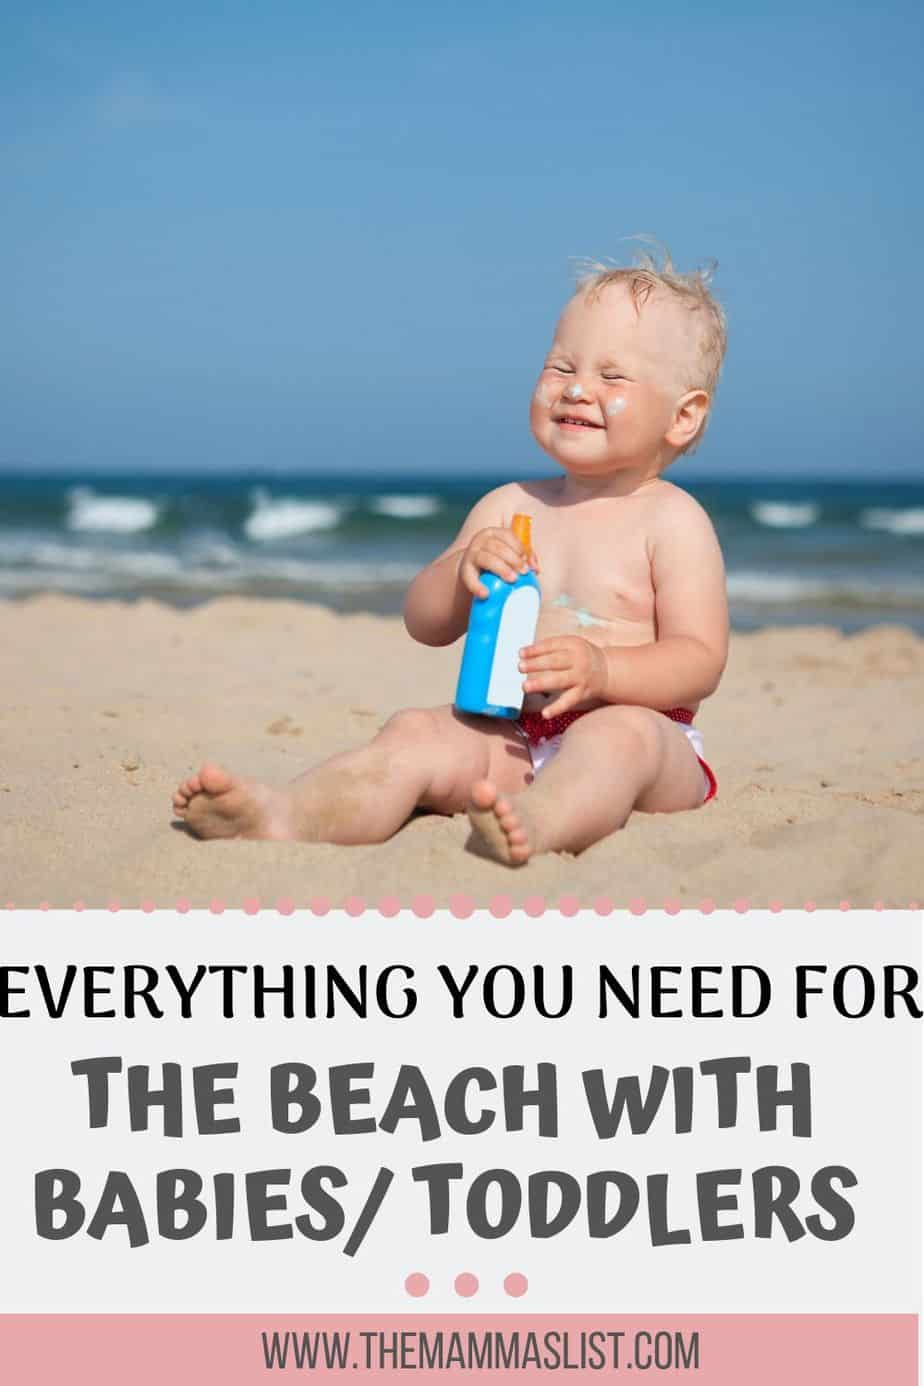 All the things you need for a great beach vacation with a baby or toddler. What to pack for a fun trip including sun protection, toys, beach tents, and how to prep for a family beach vacation.